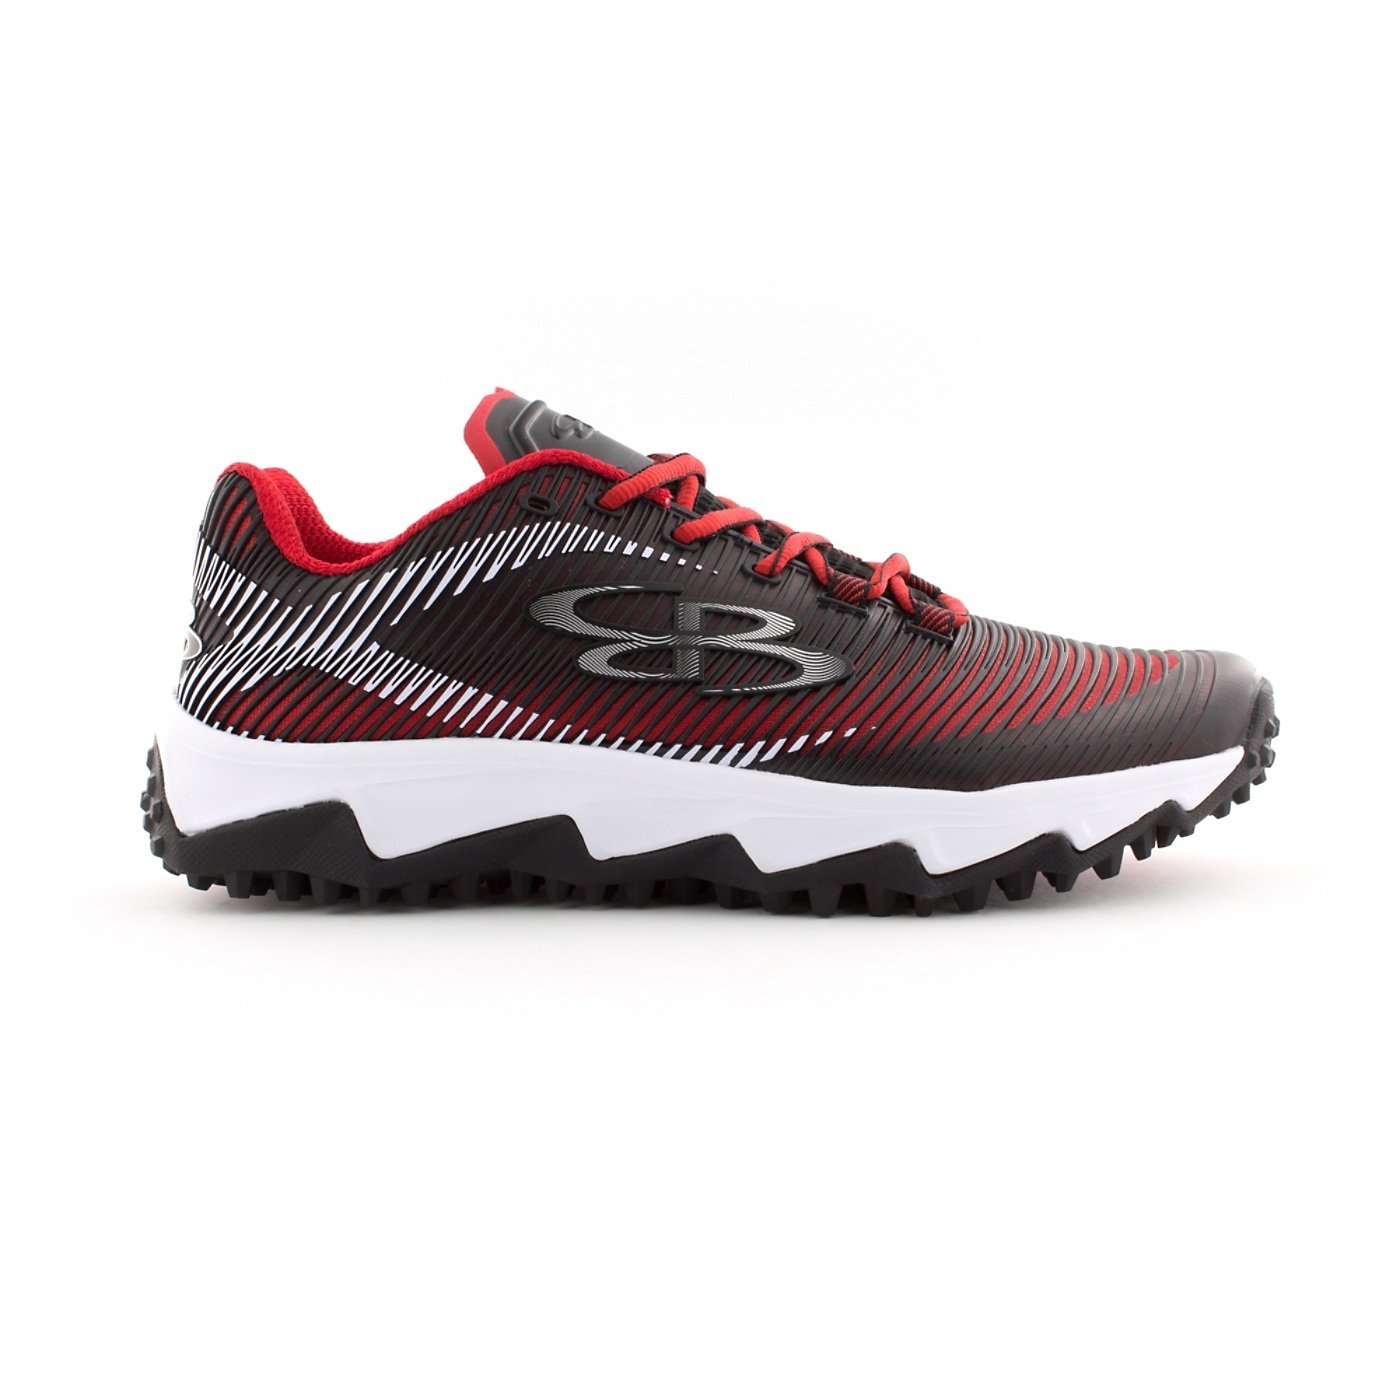 Boombah Men's Aftershock DPS Turf Black/Red - Size 10